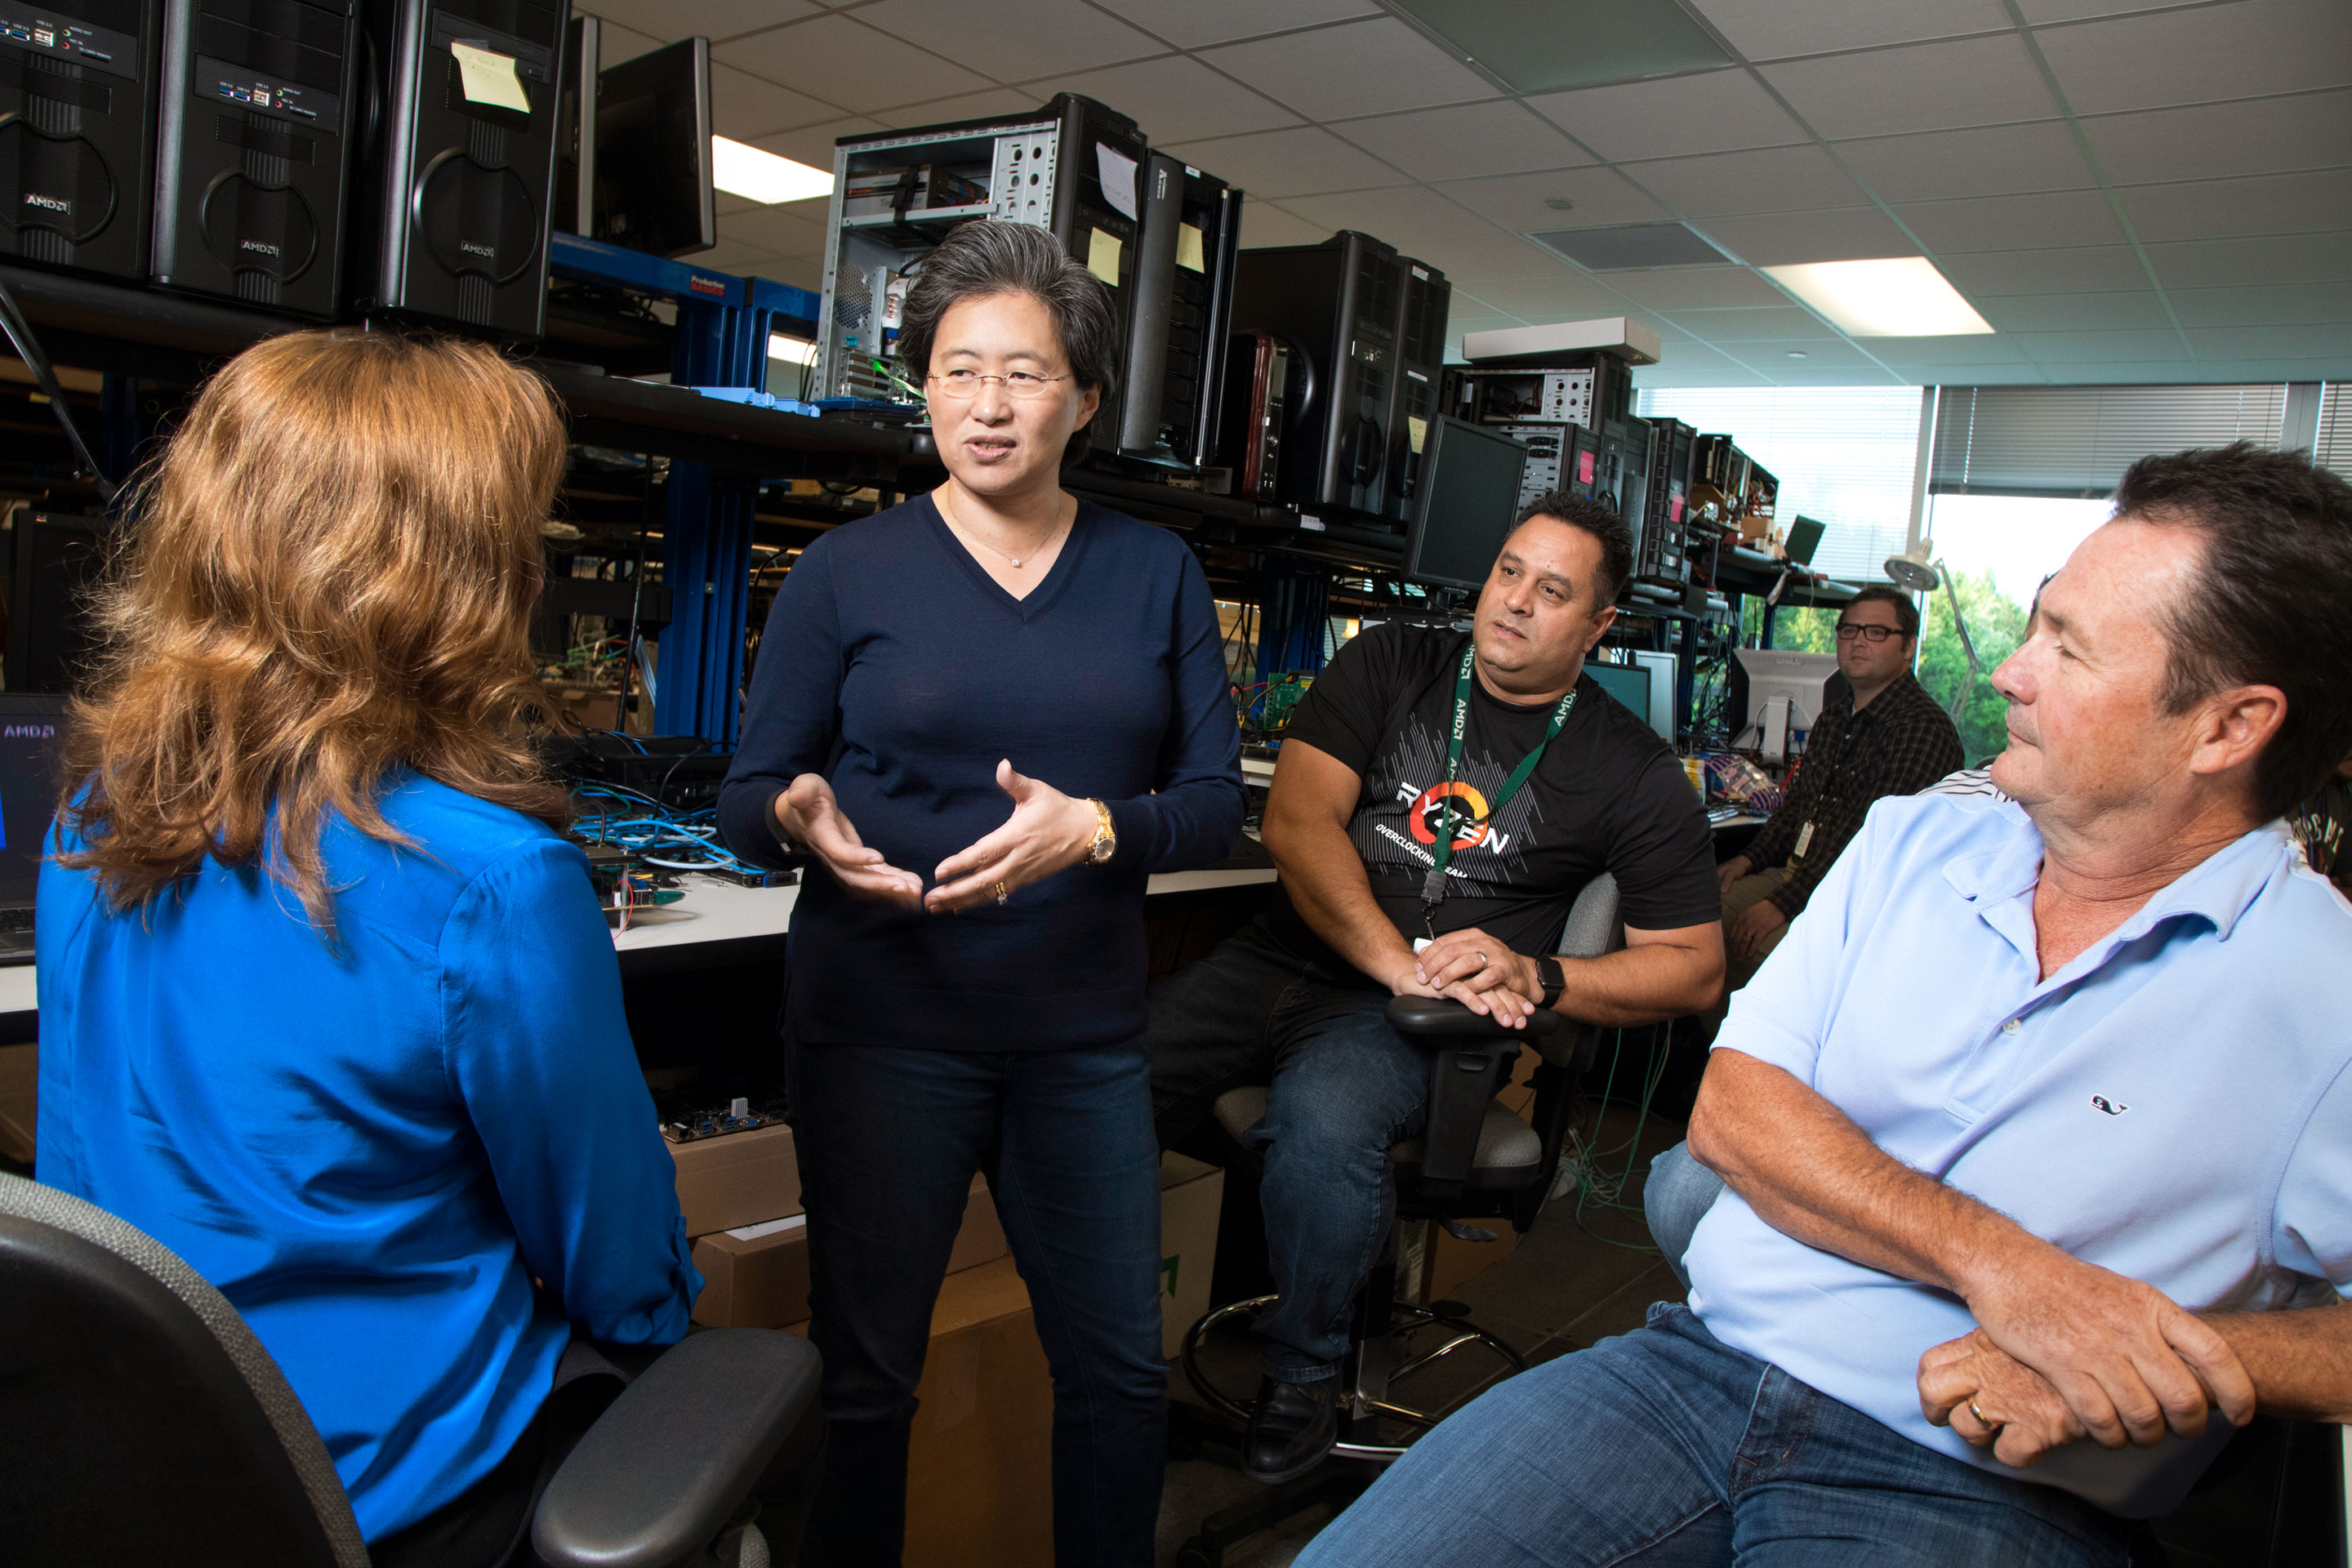 AMD CEO Lisa Su in the lab with Louis Castro (in Ryzen T-shirt), Lee Rusk (in polo), and other engineers on AMD's Zeppelin chip project.